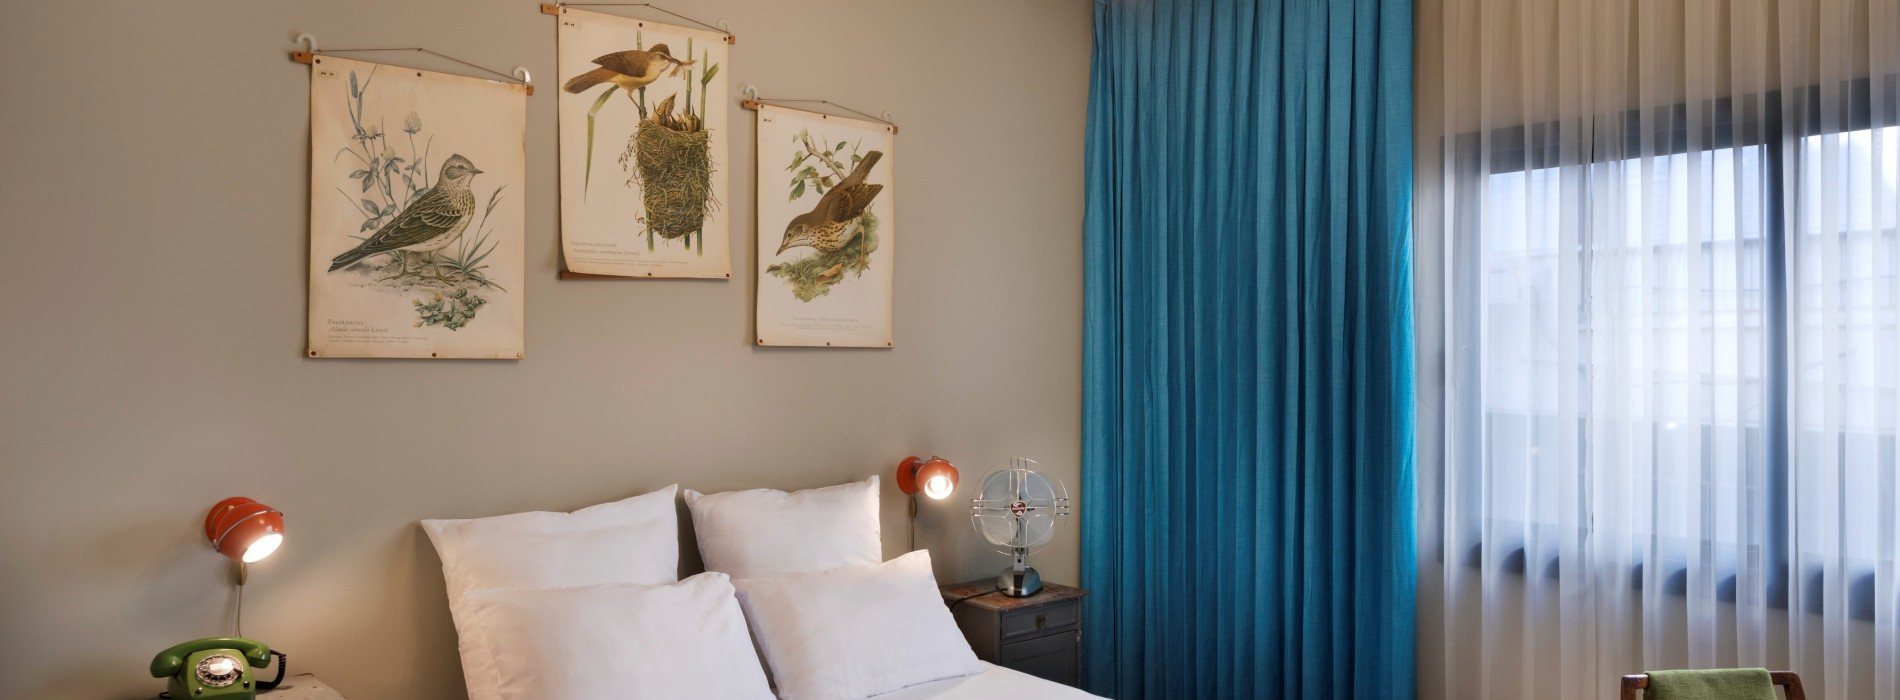 The Dave – West , a new hotel for the young urban traveler, opens in Tel Aviv, Israel